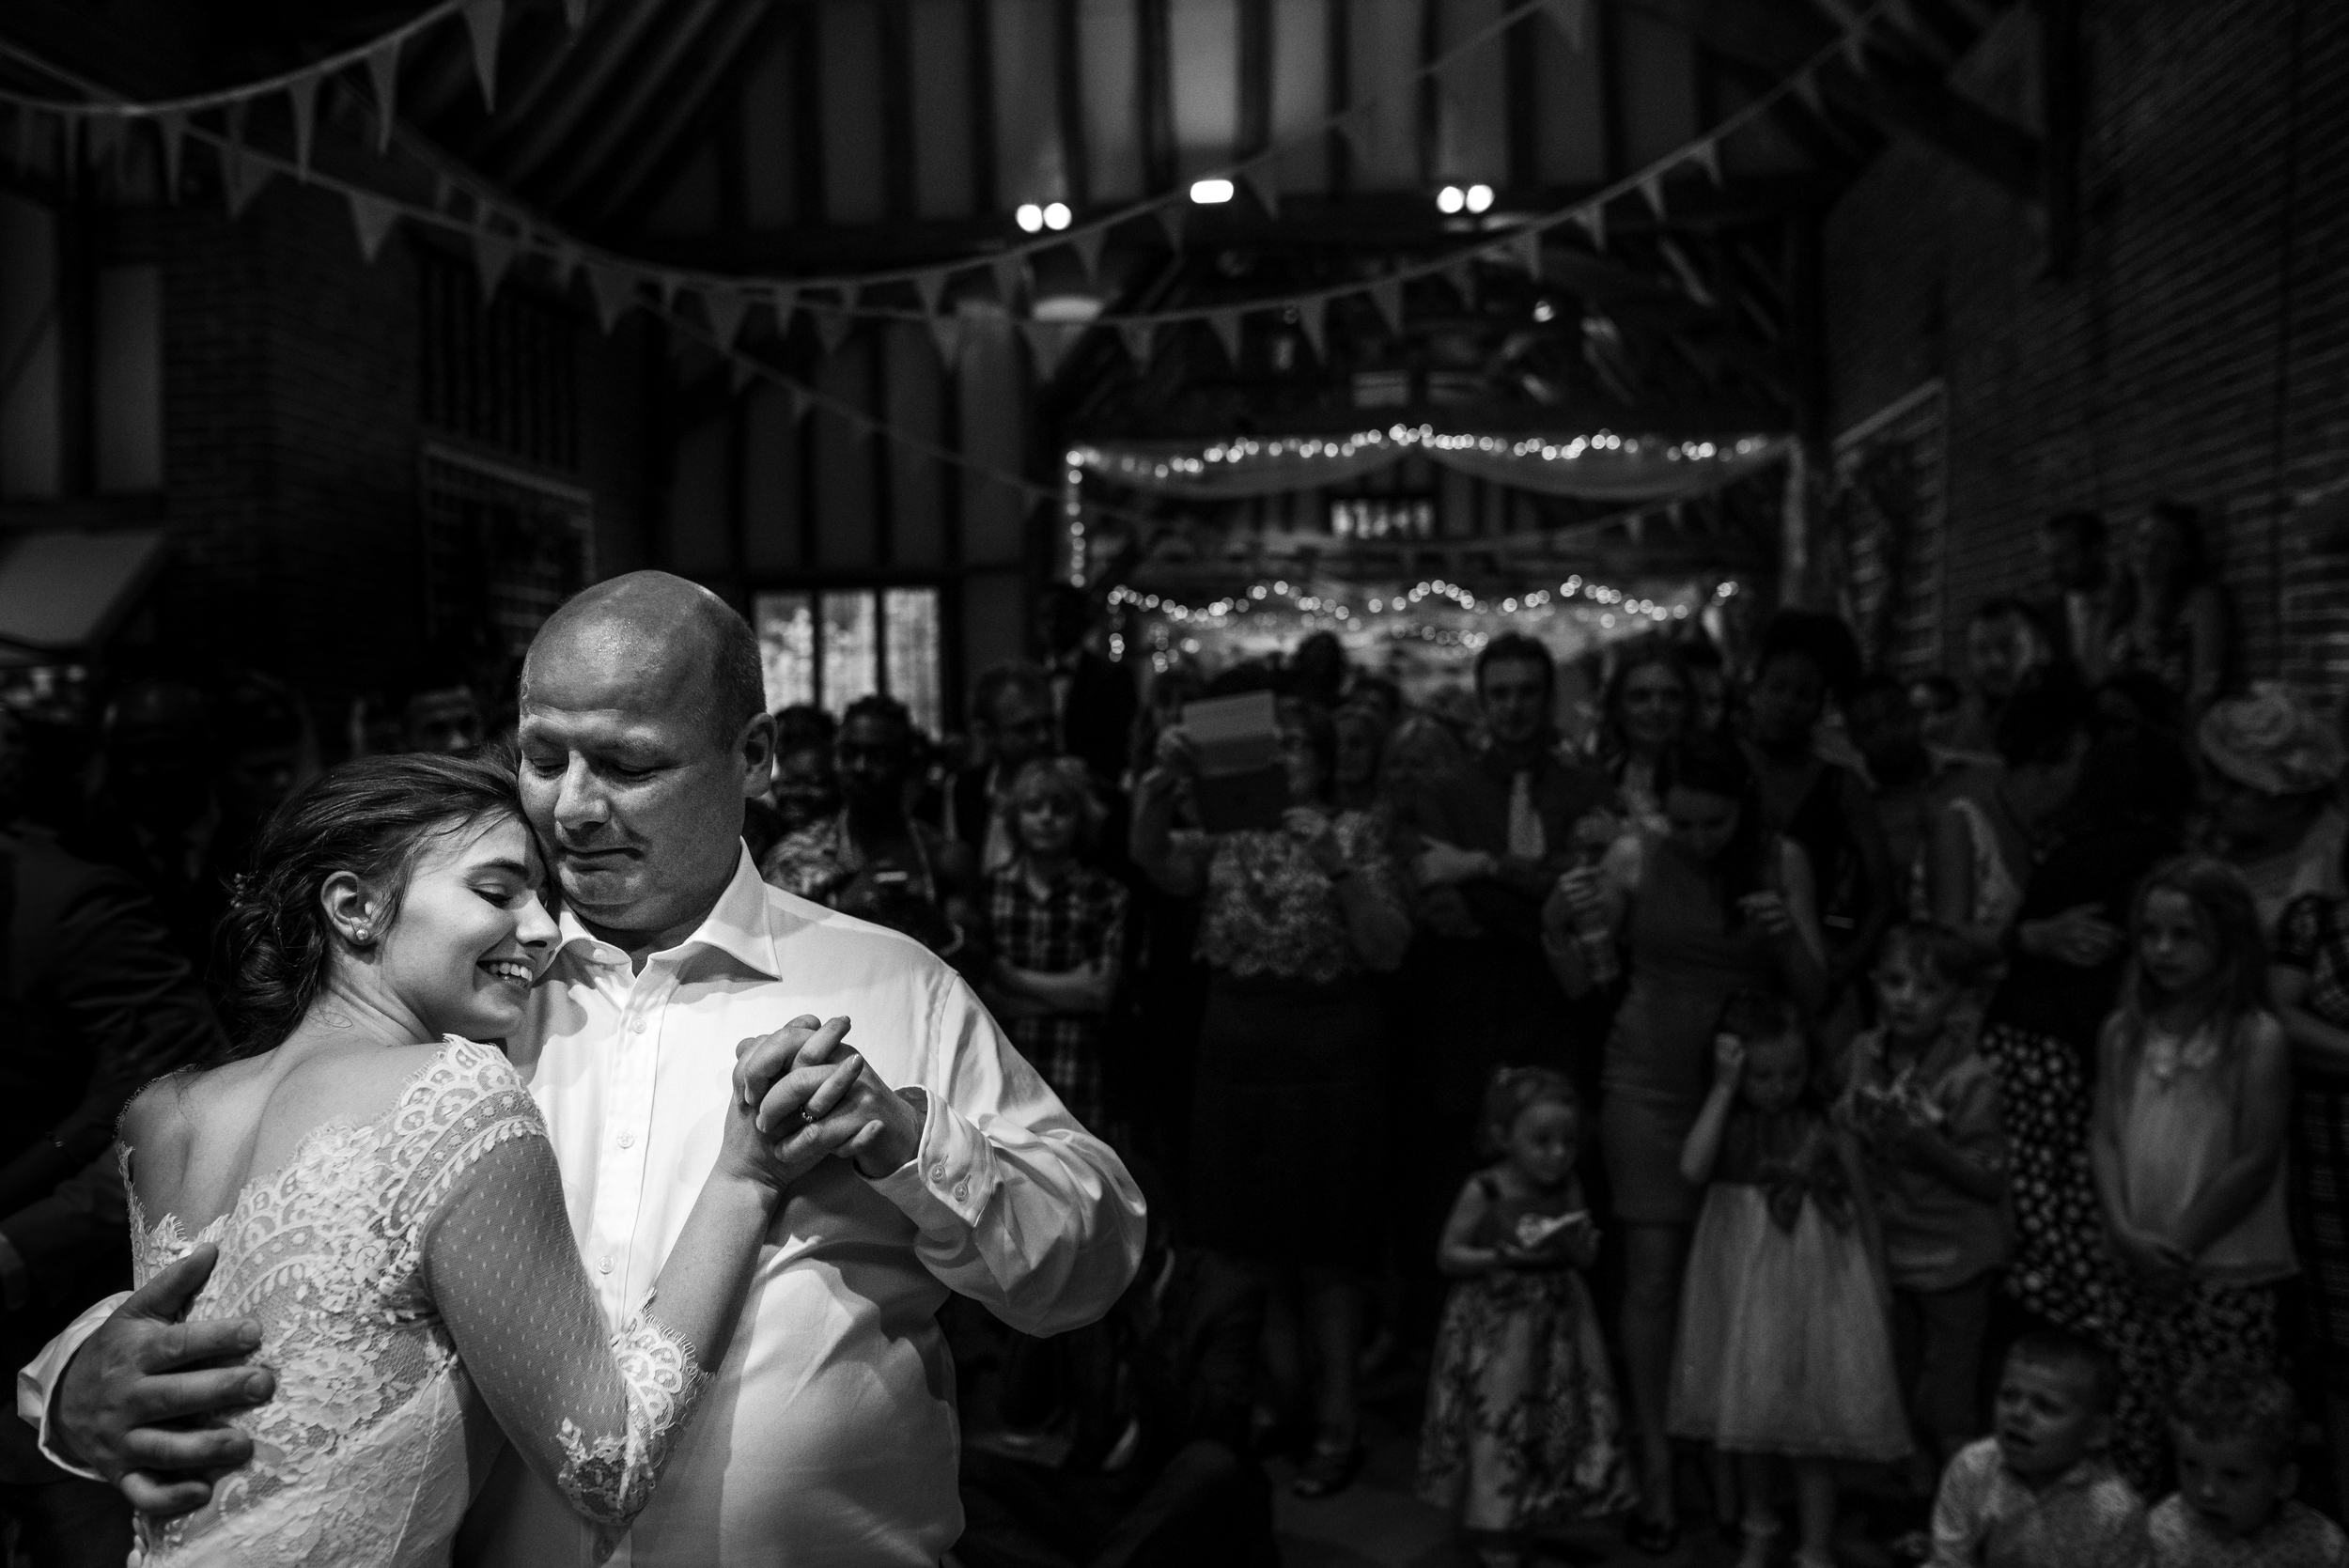 Dancing with dad - An Image I Love (series)